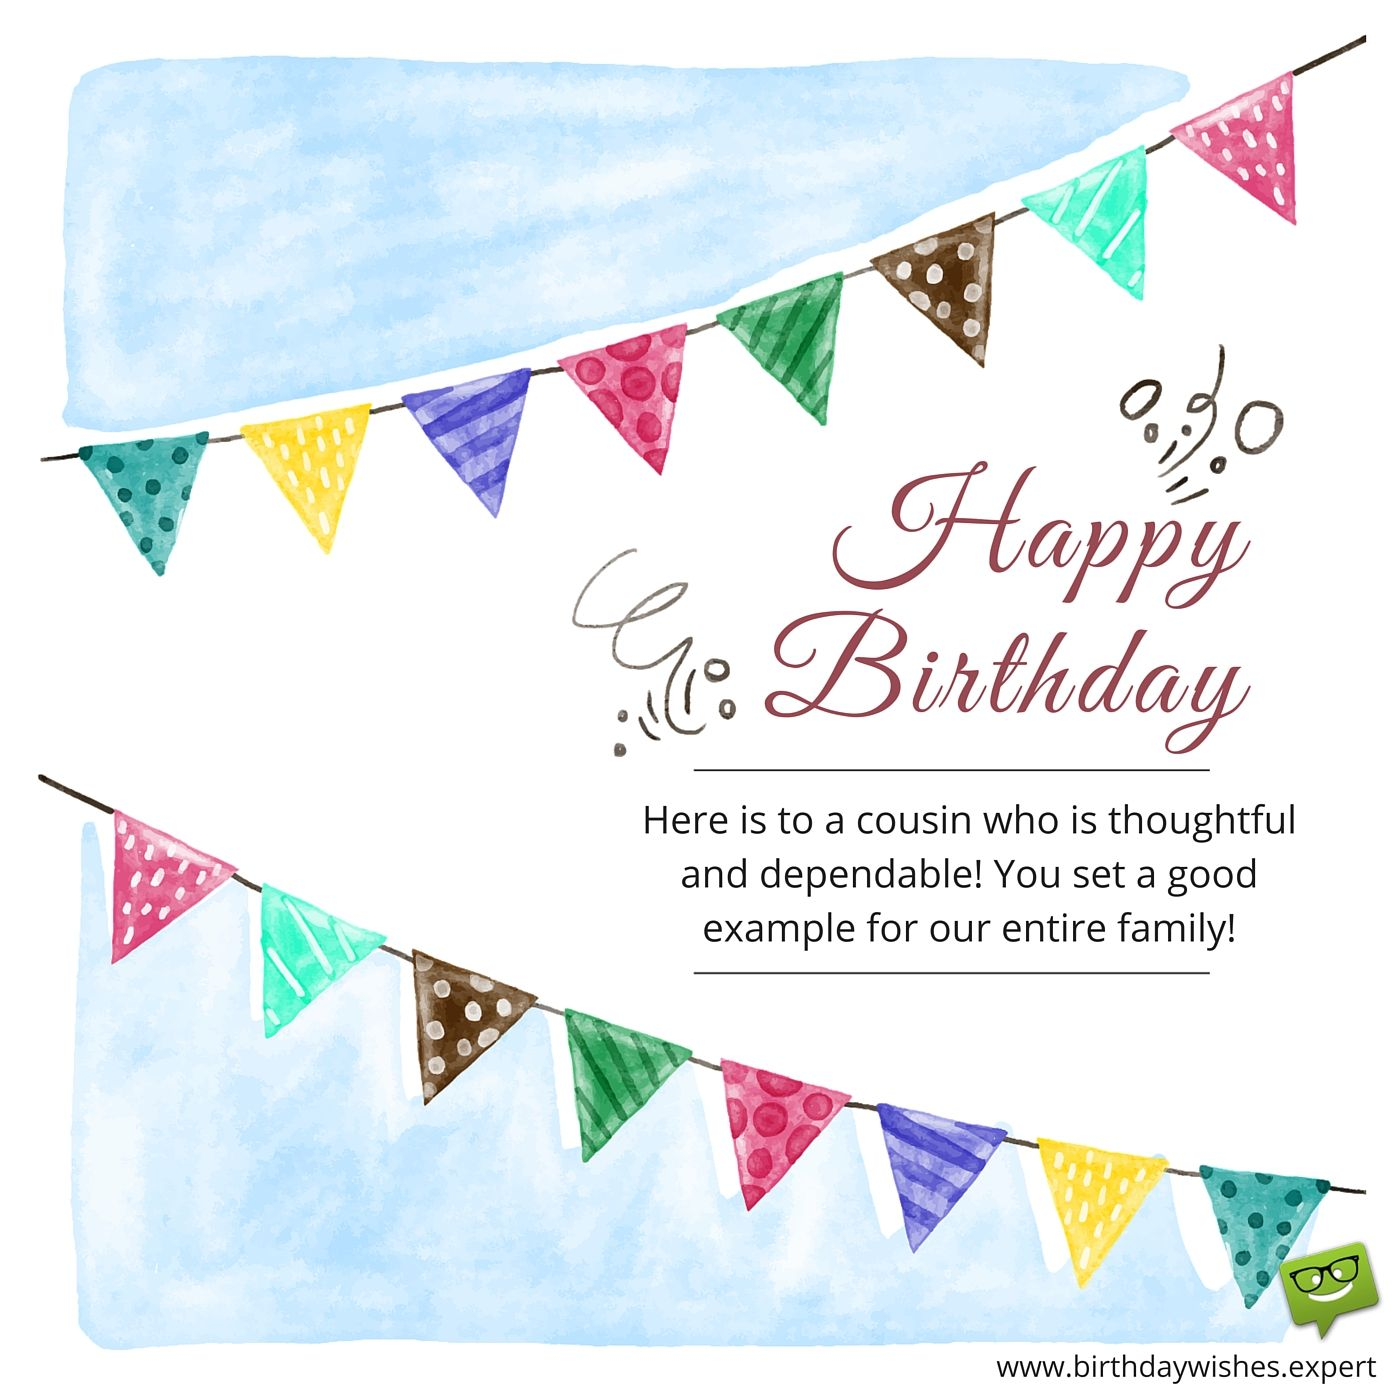 Happy birthday here is to cousin who is thoughtful and dependable birthdays kristyandbryce Image collections